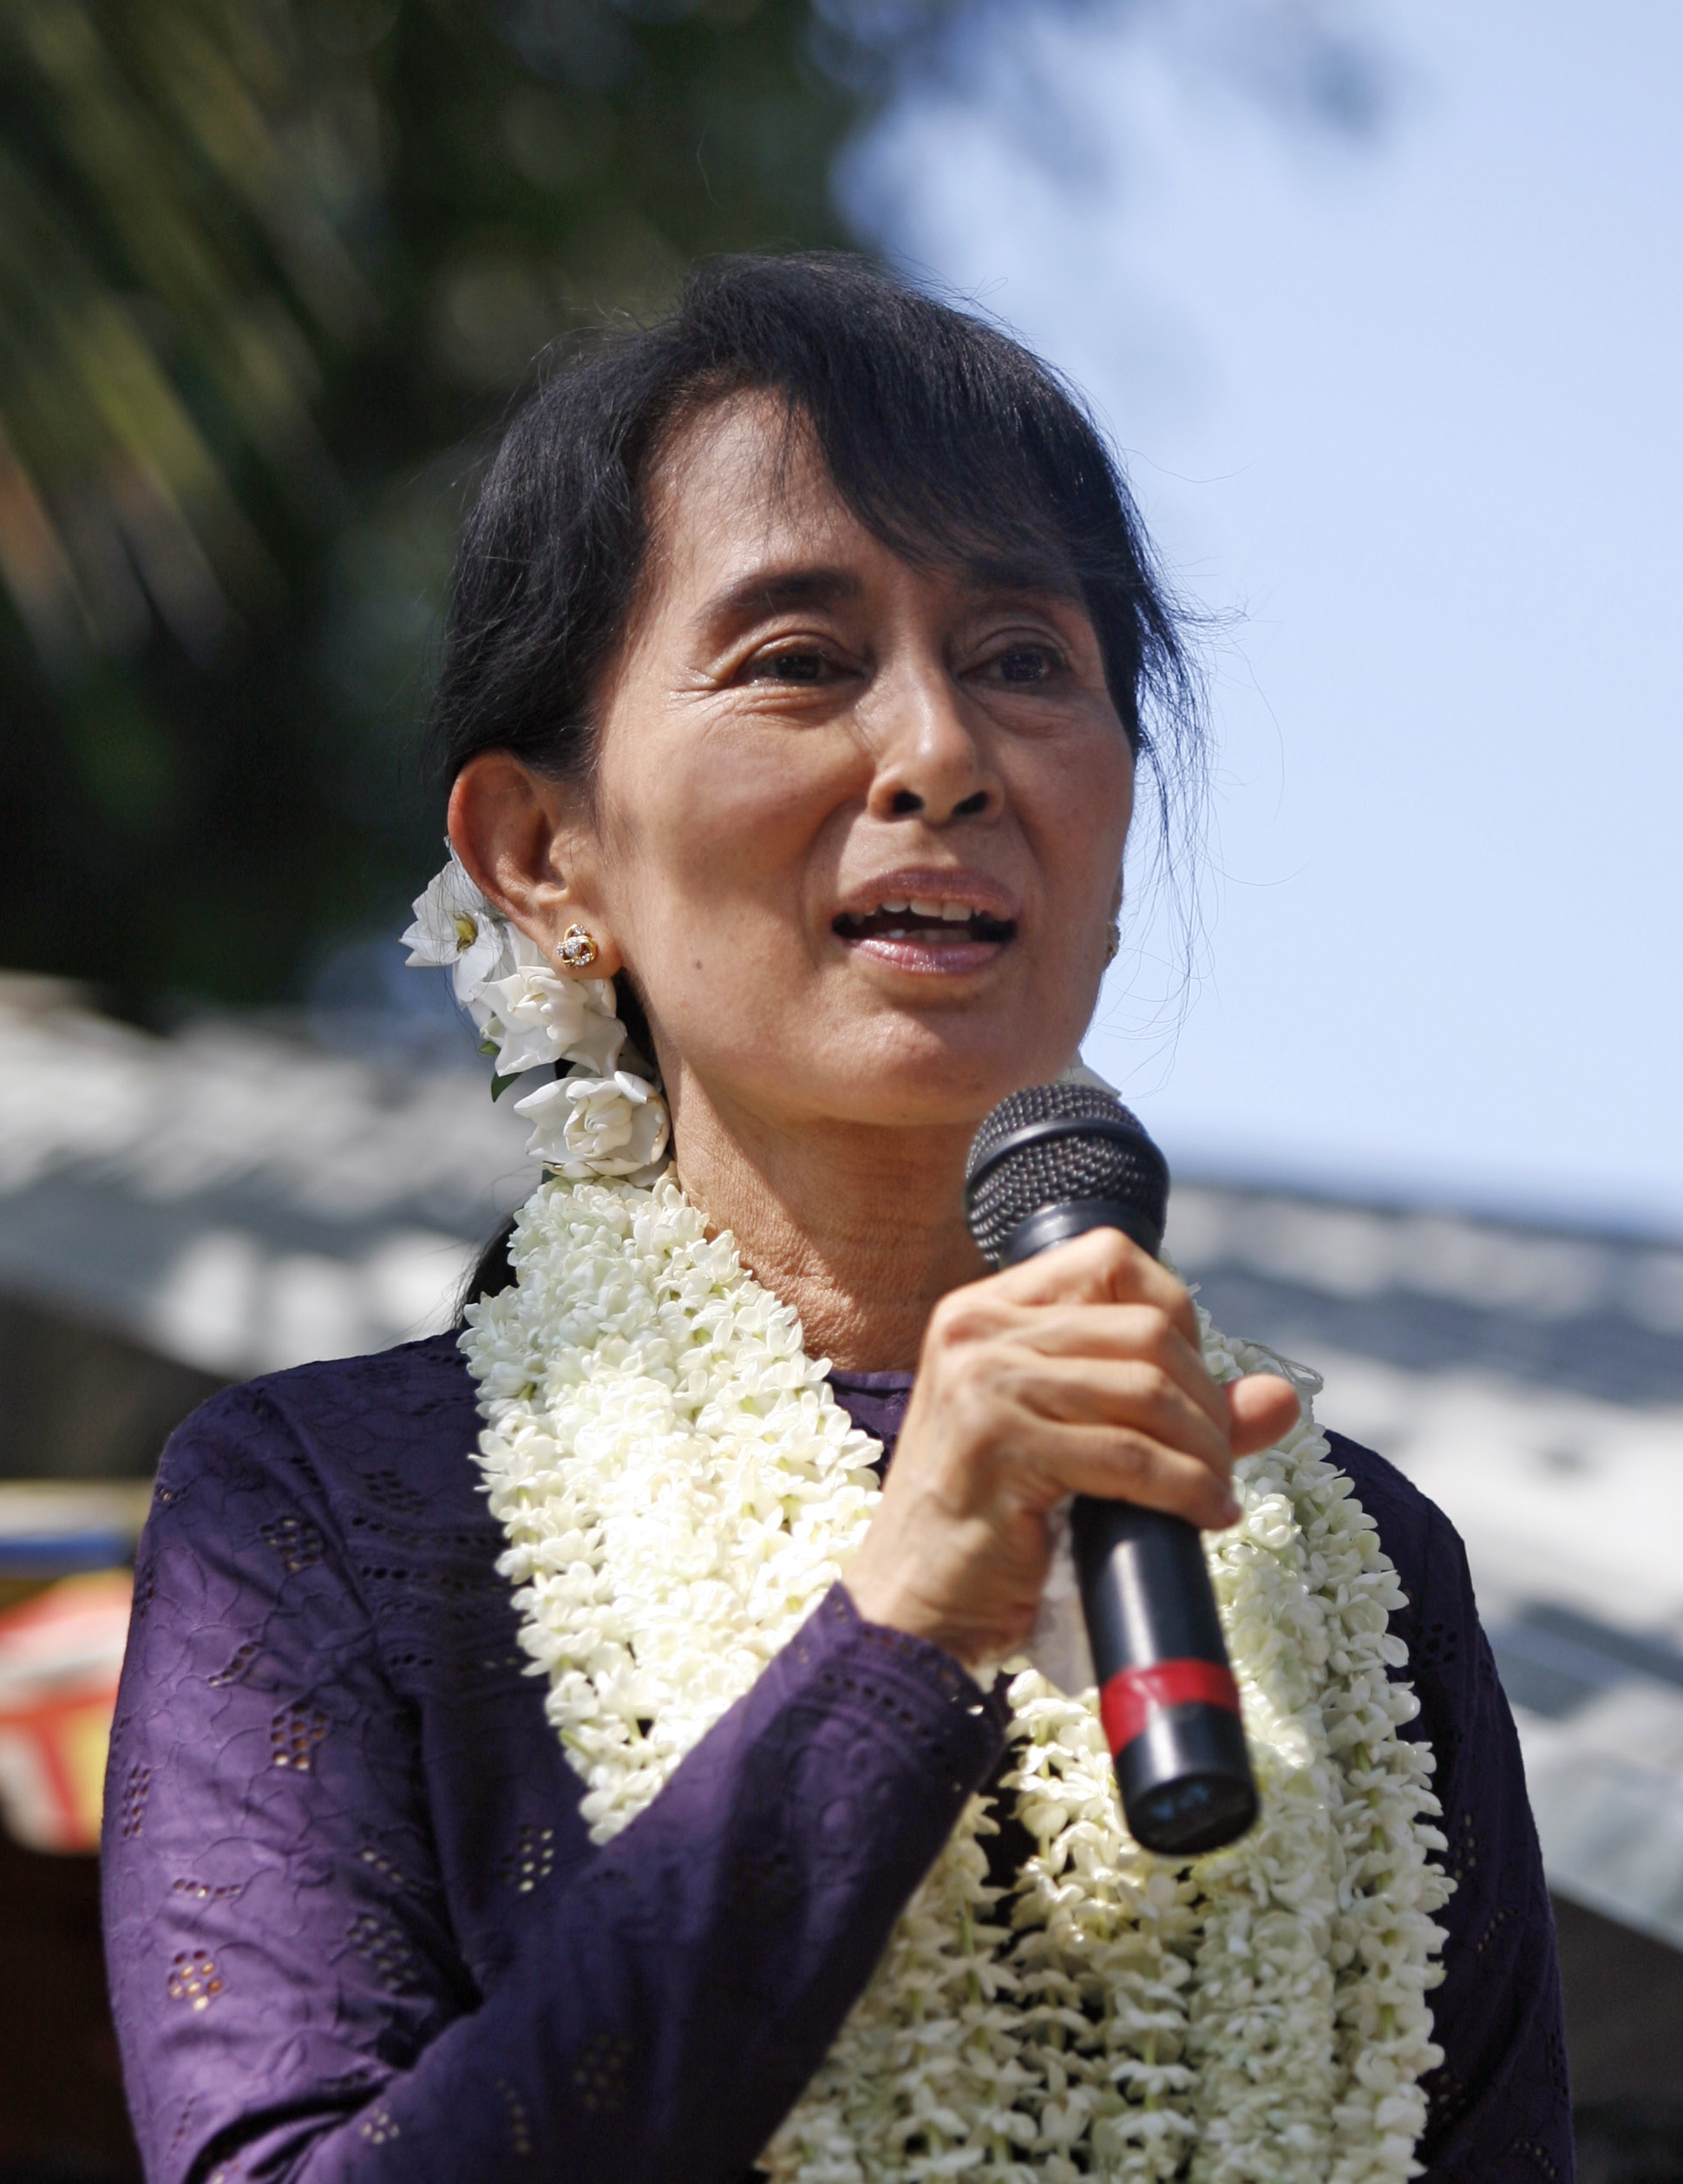 Description Aung San Suu Kyi 17 November 2011.jpg